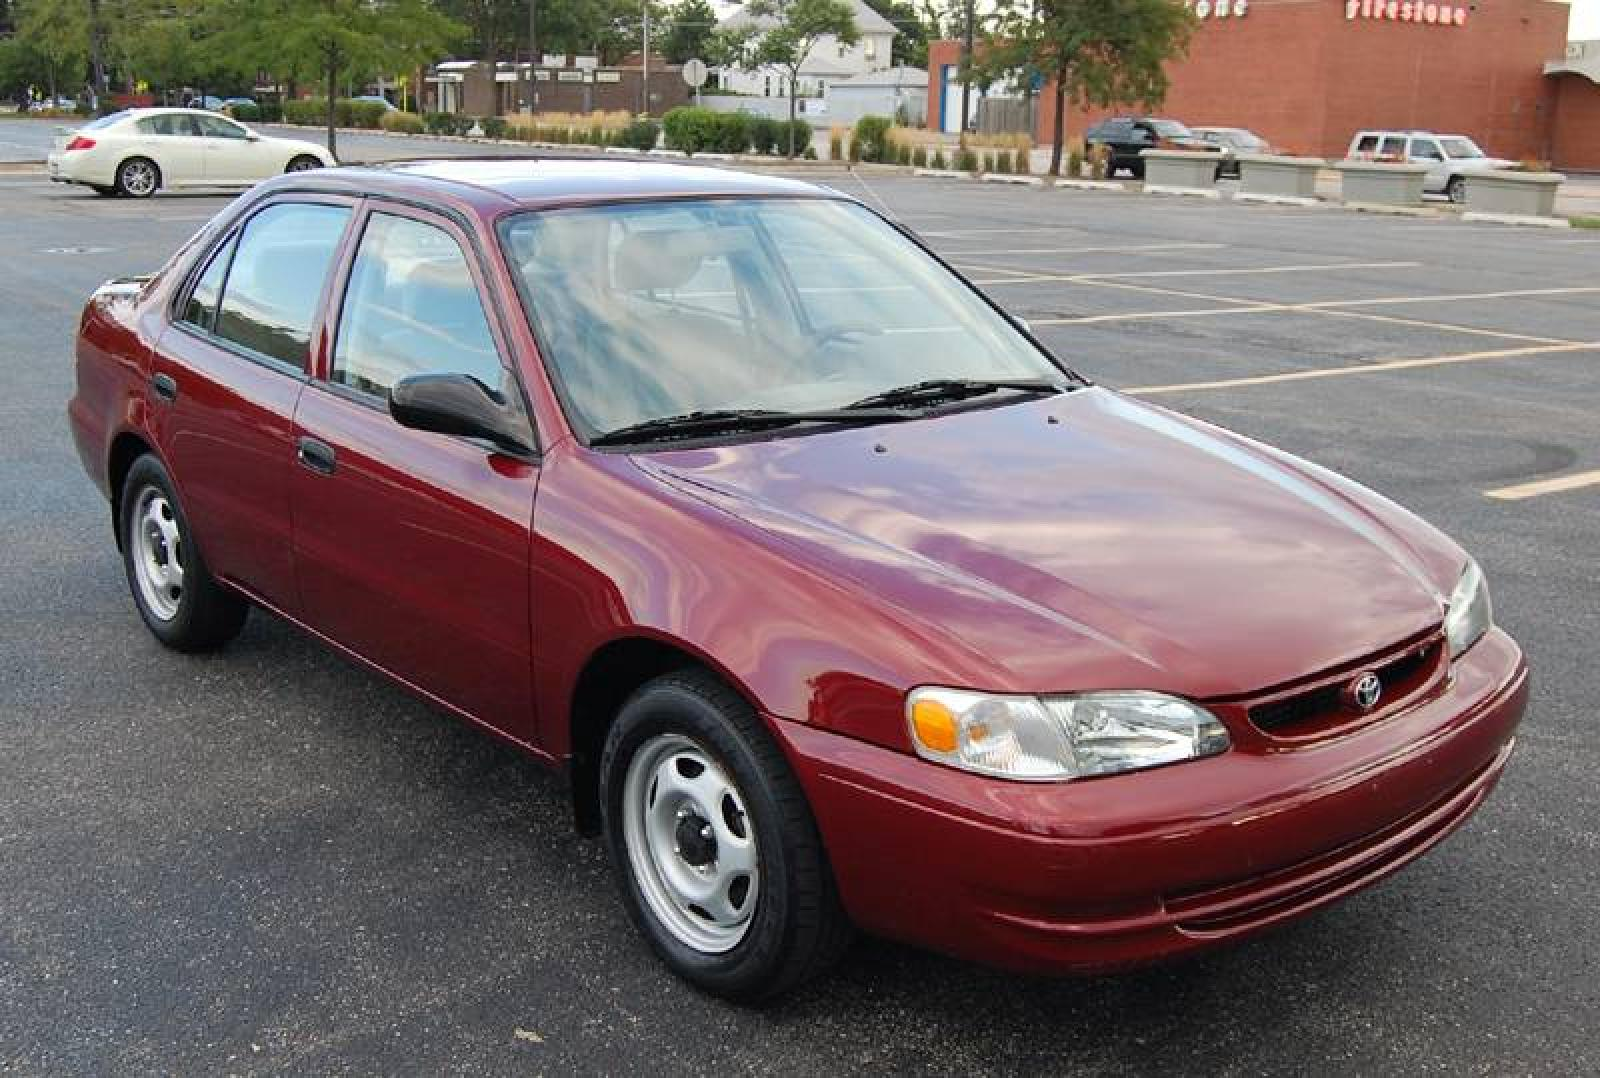 1999 toyota corolla information and photos zombiedrive. Black Bedroom Furniture Sets. Home Design Ideas